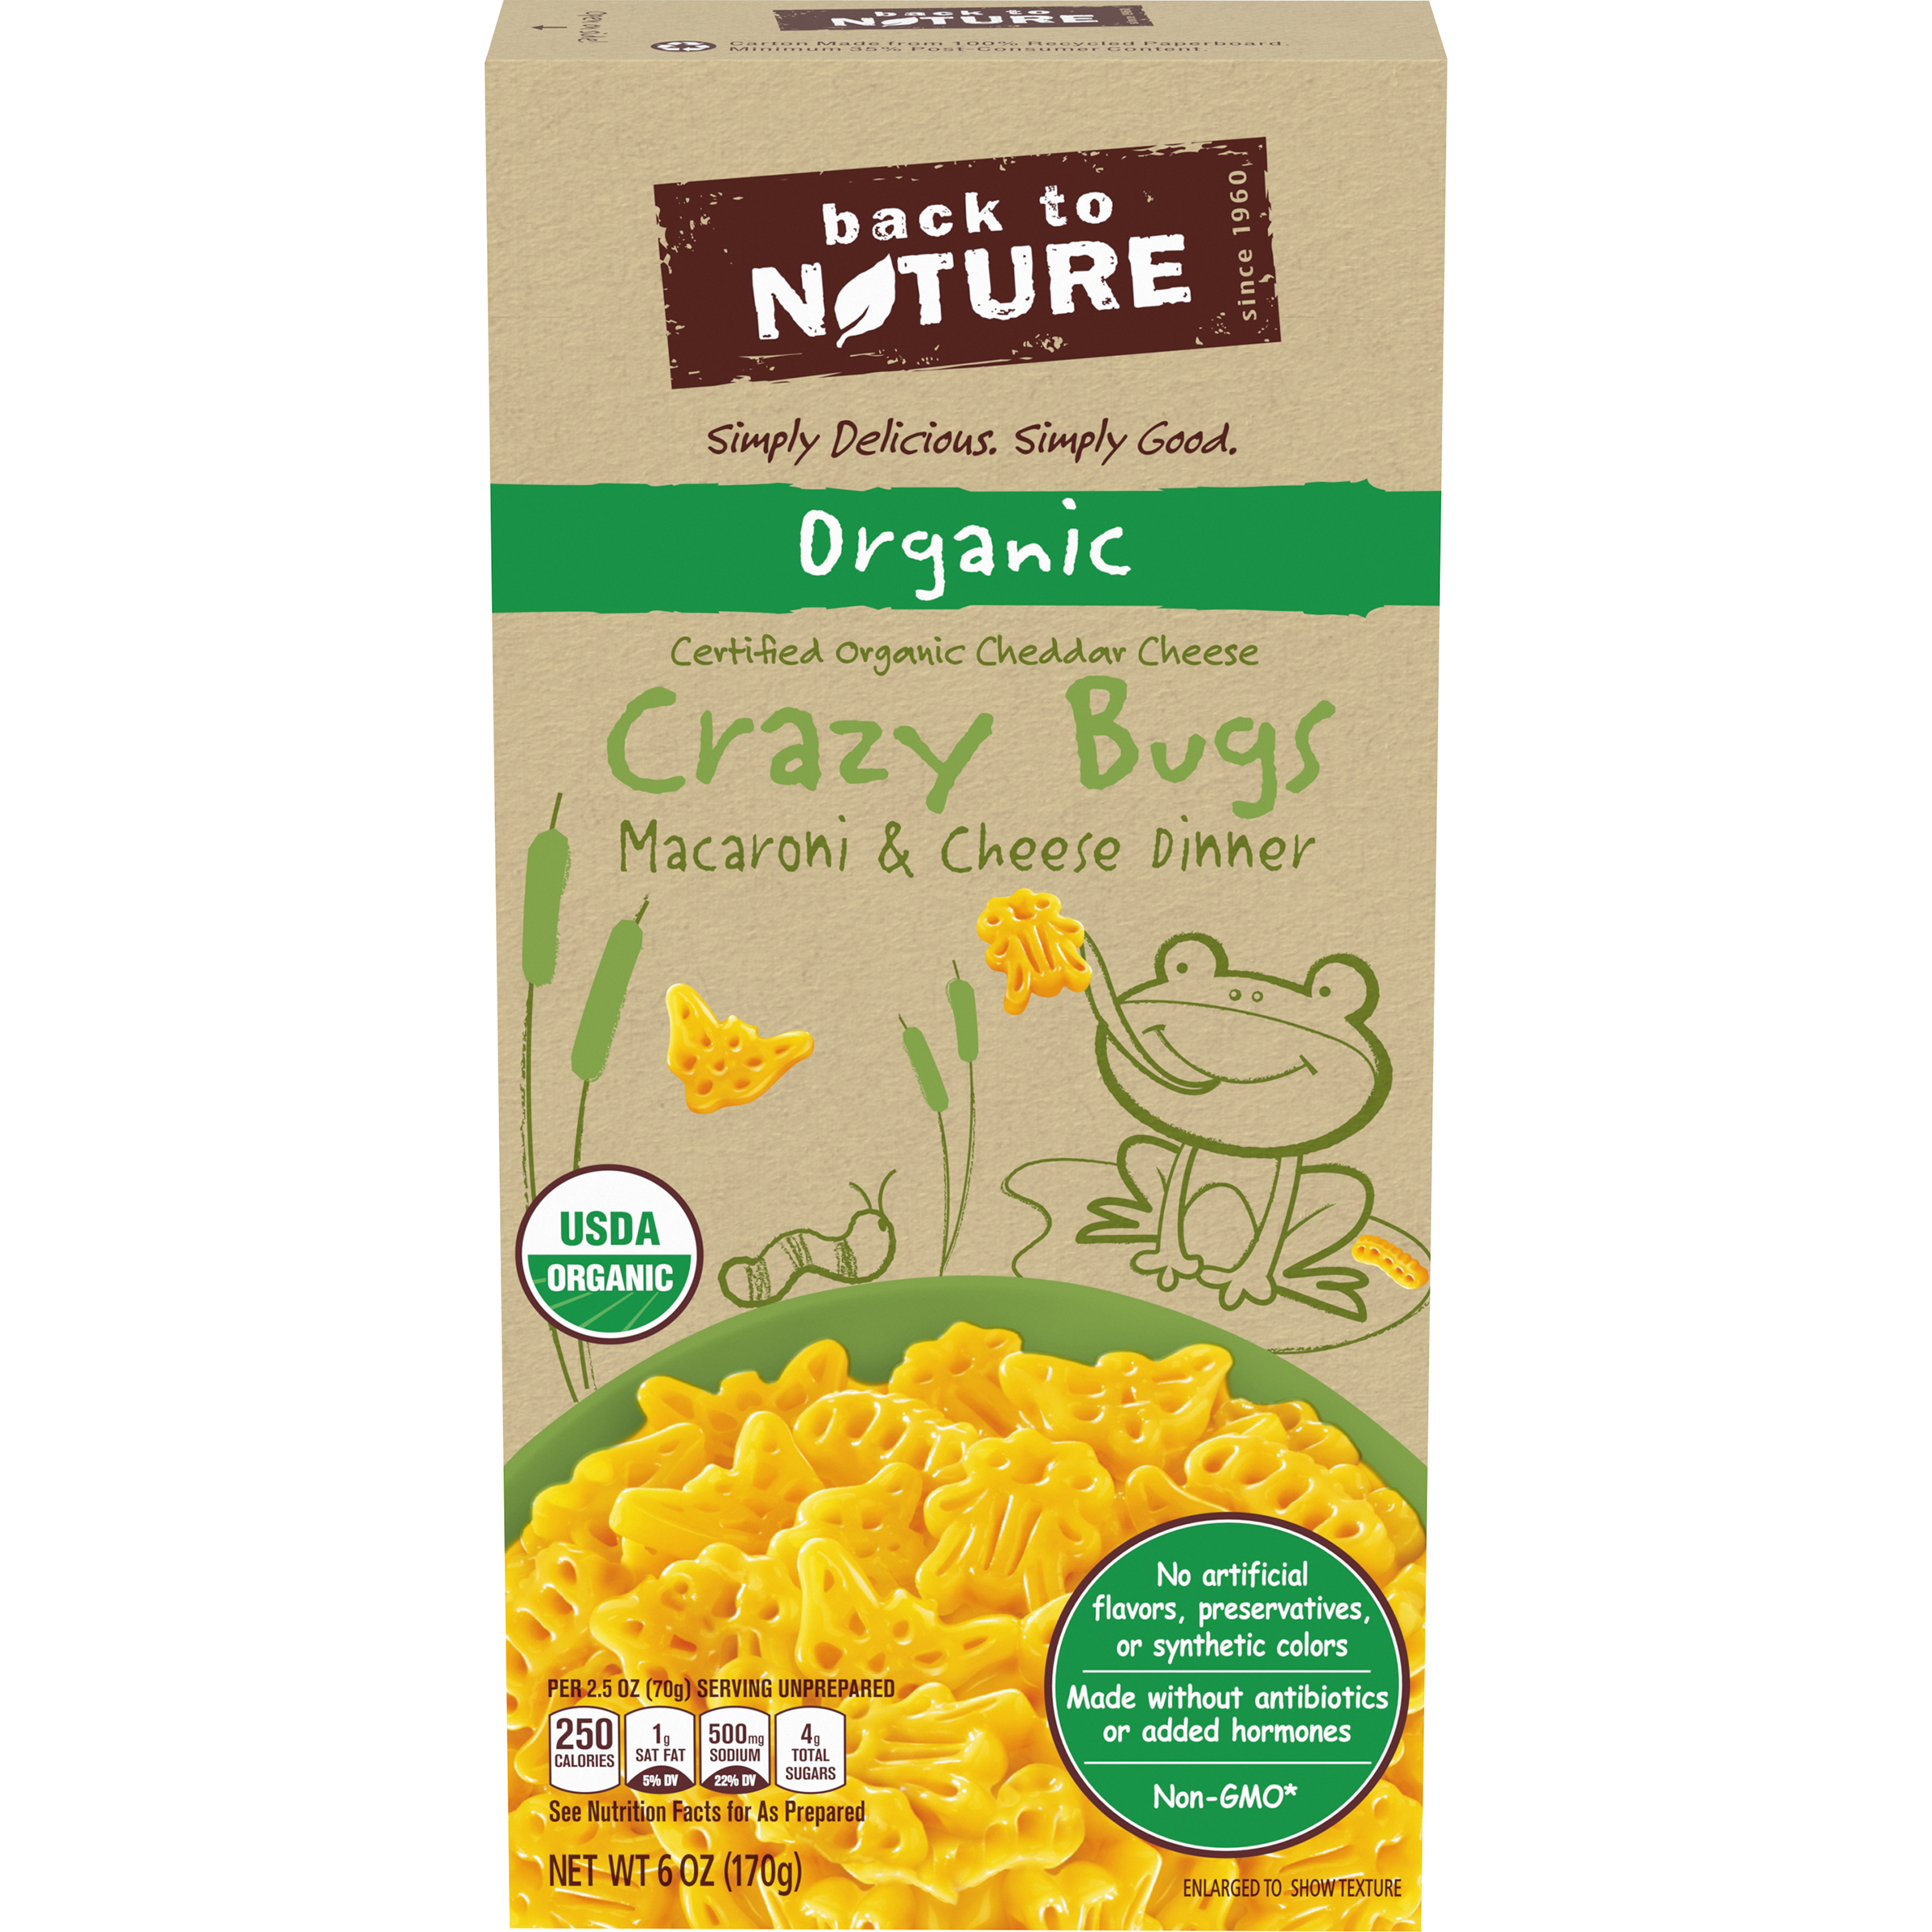 BACK TO NATURE Organic Crazy Bugs Macaroni & Cheese Dinner 6 oz. Box